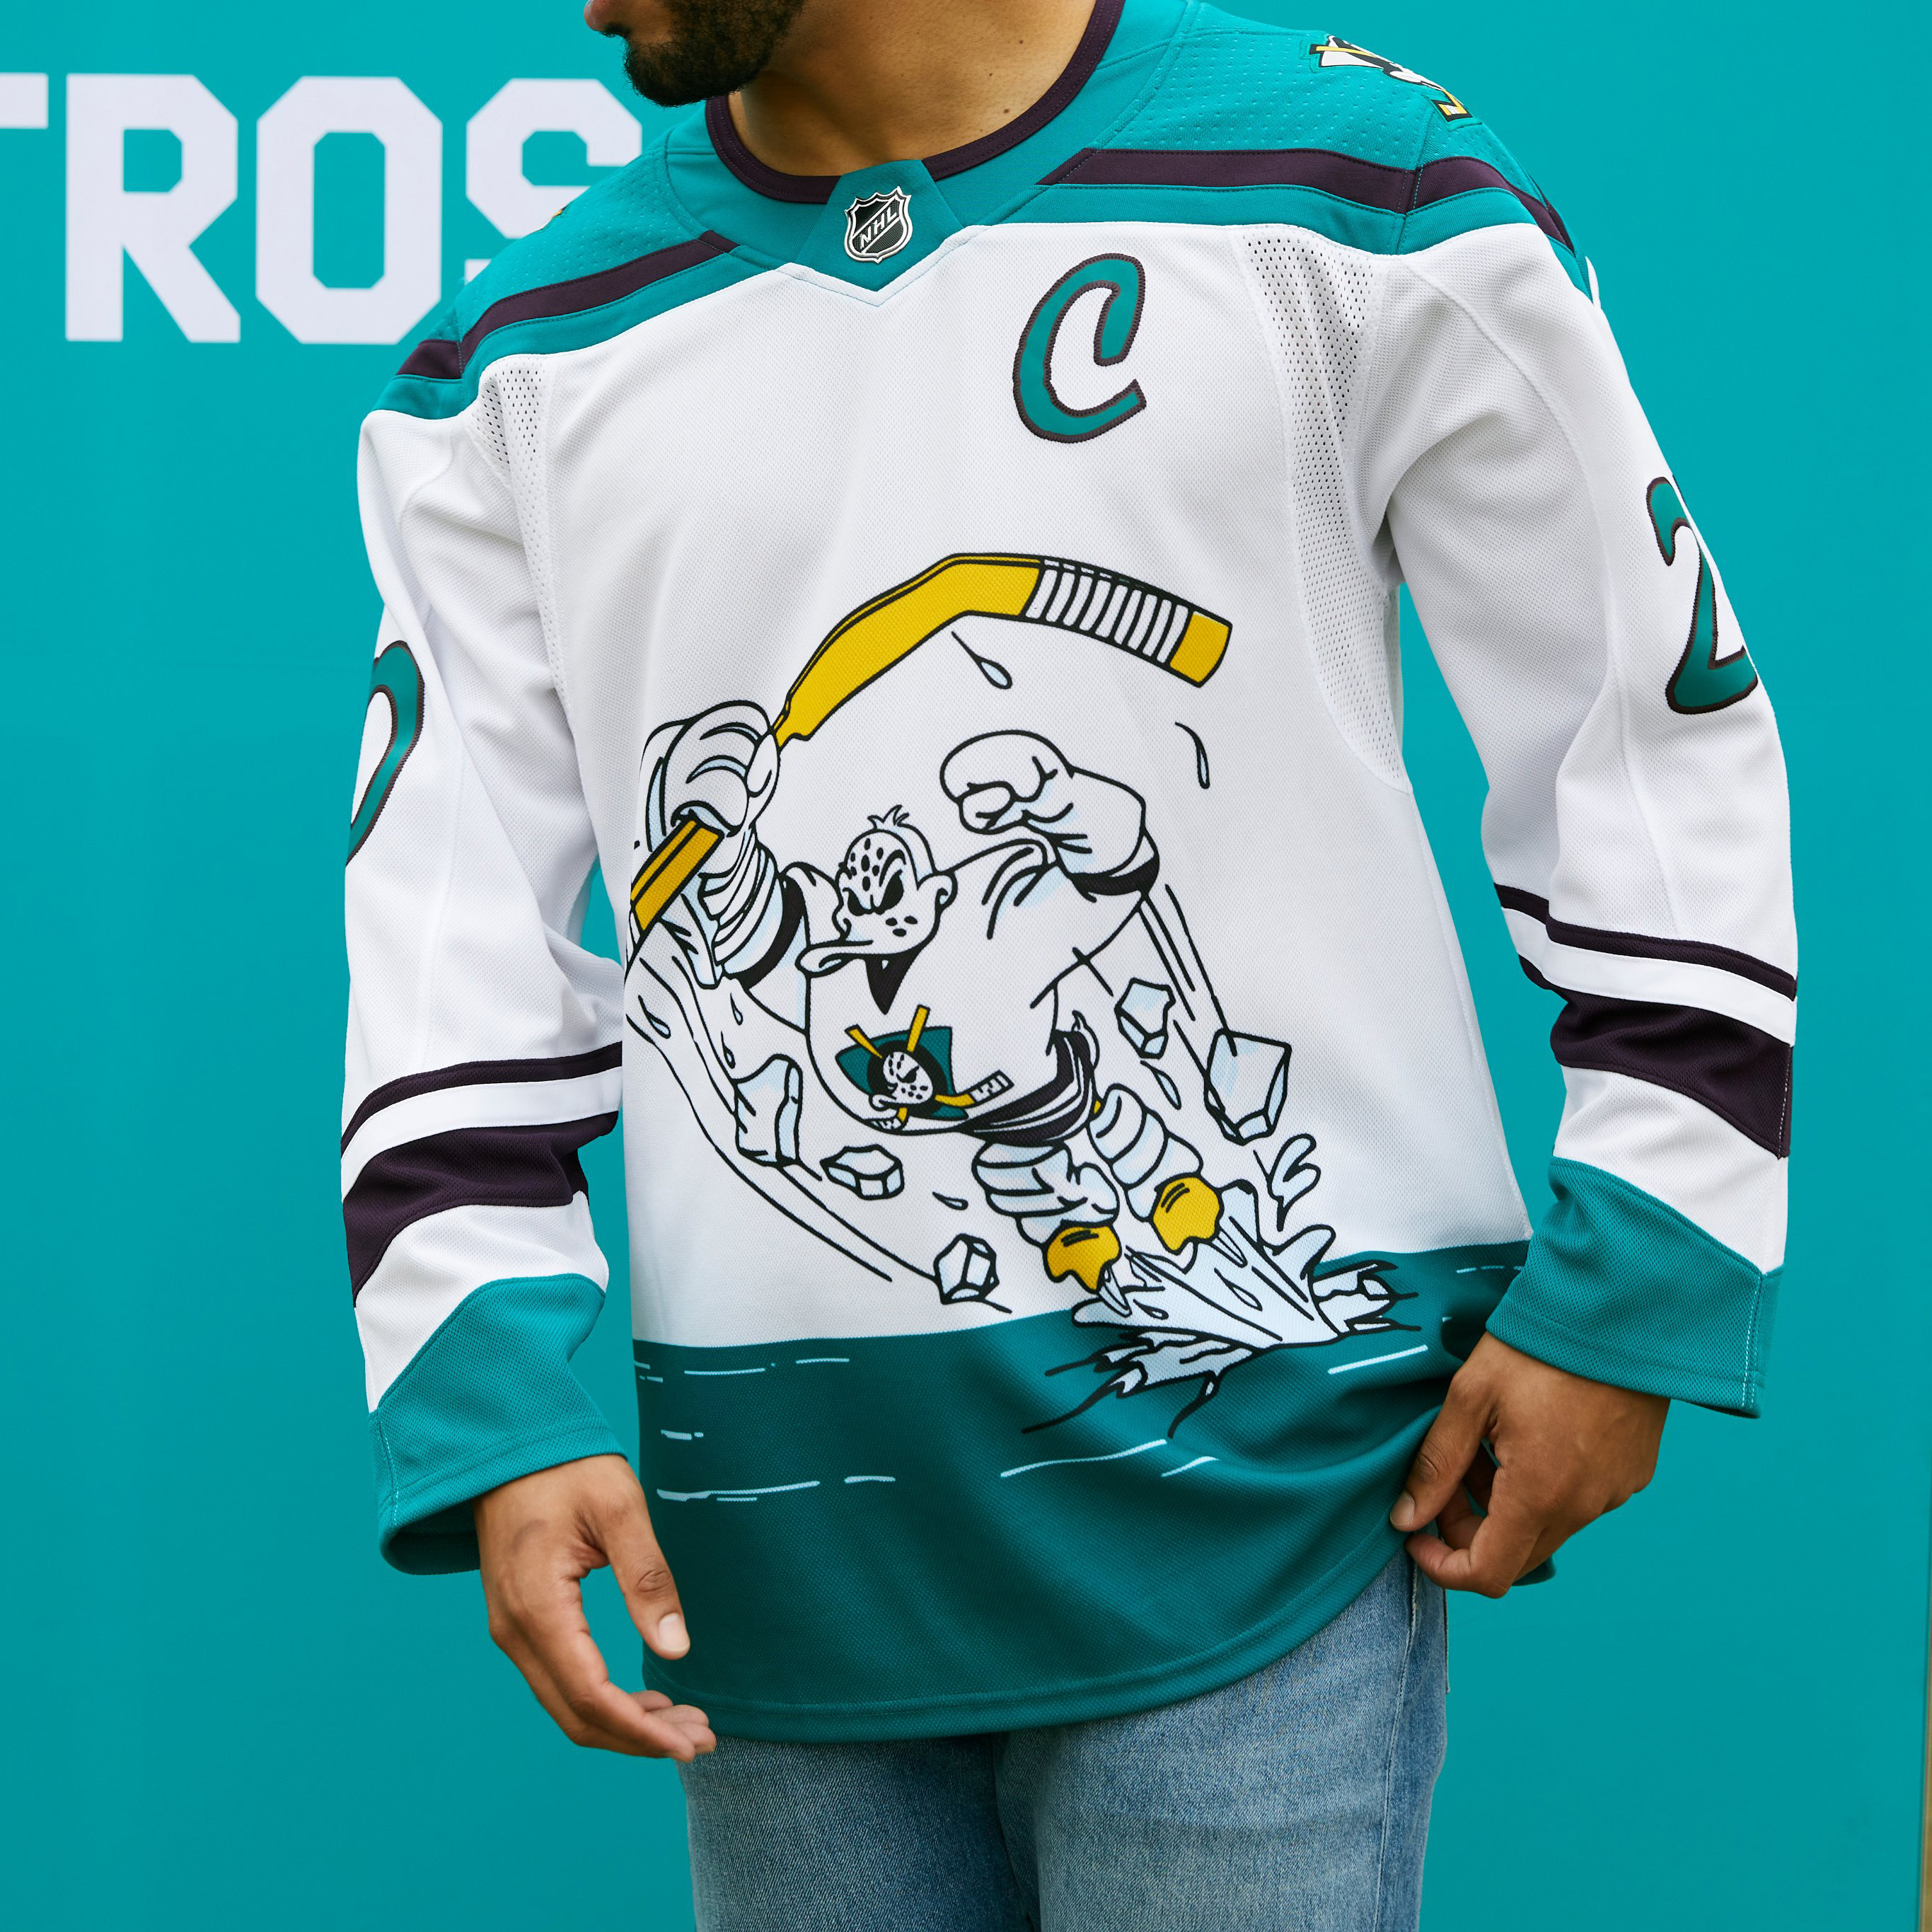 The essential holiday buyer's guide for Adidas' Reverse Retro NHL ...